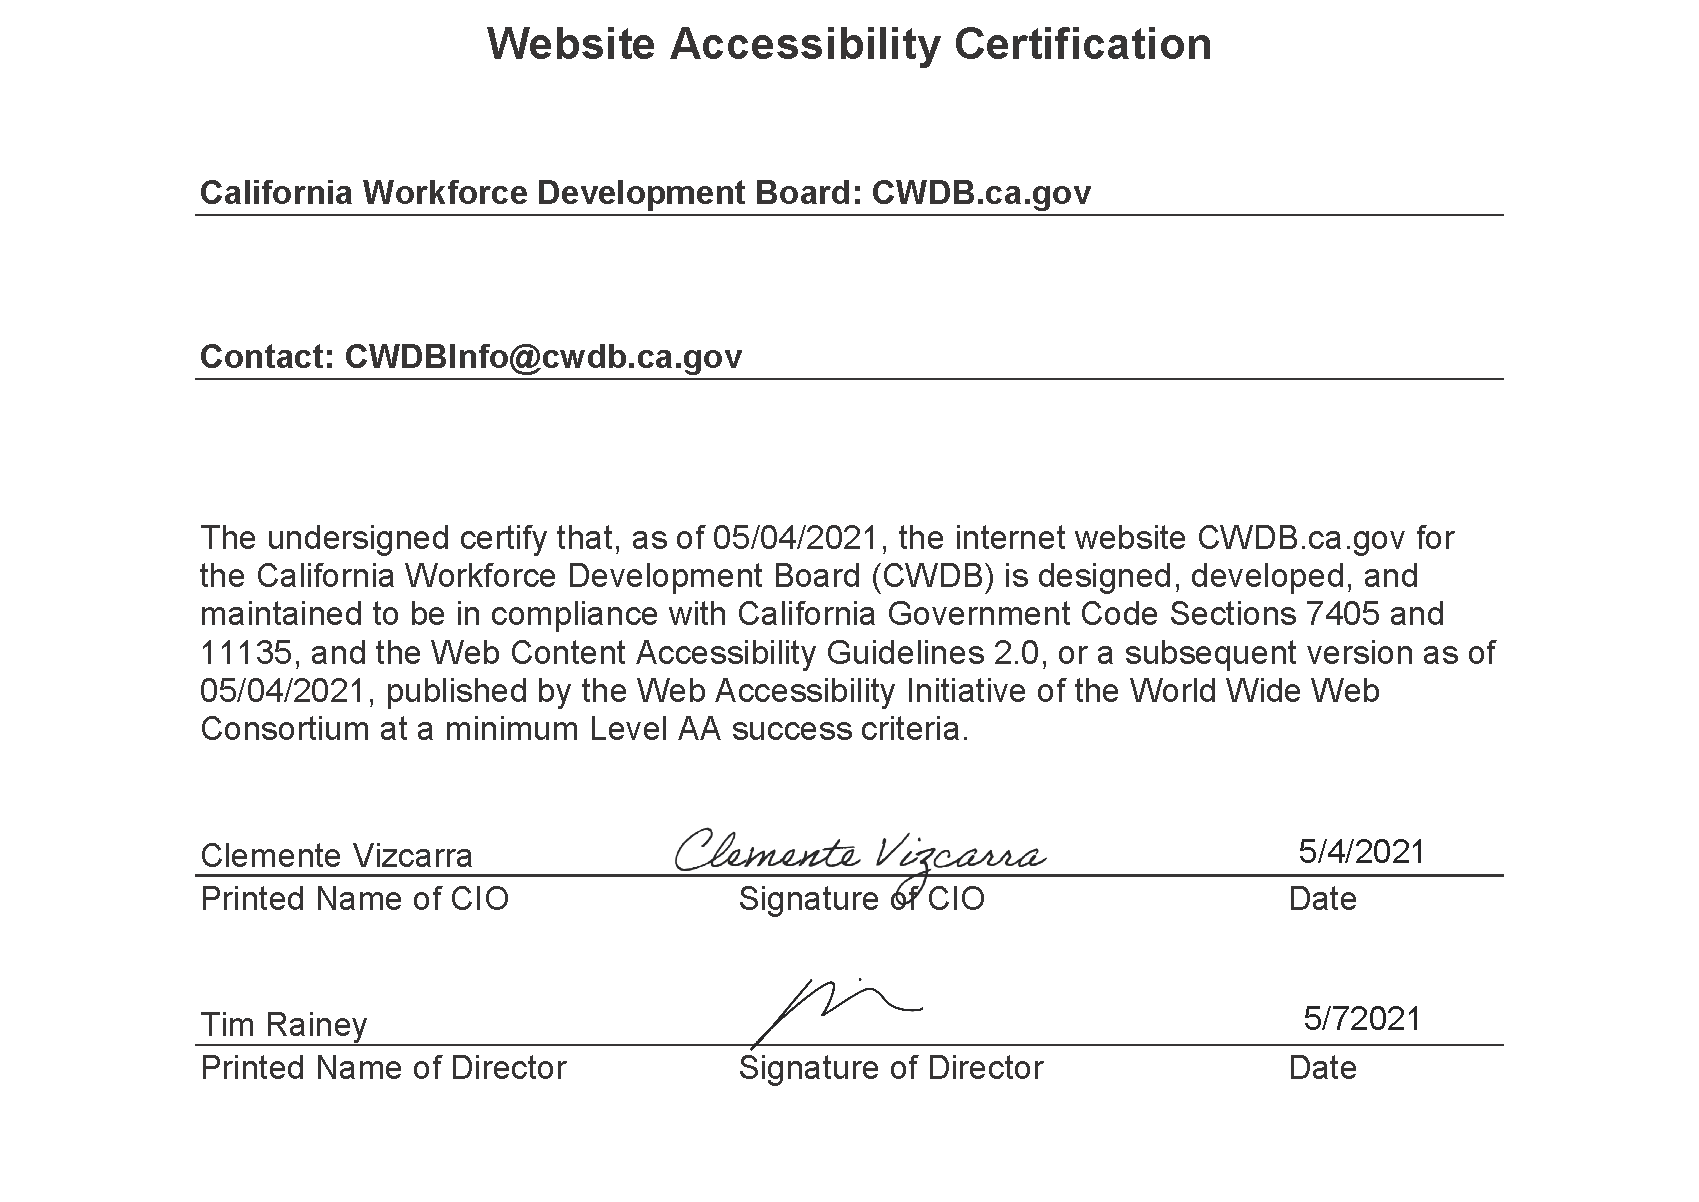 C W D B Website Accessibility Certification Screenshot